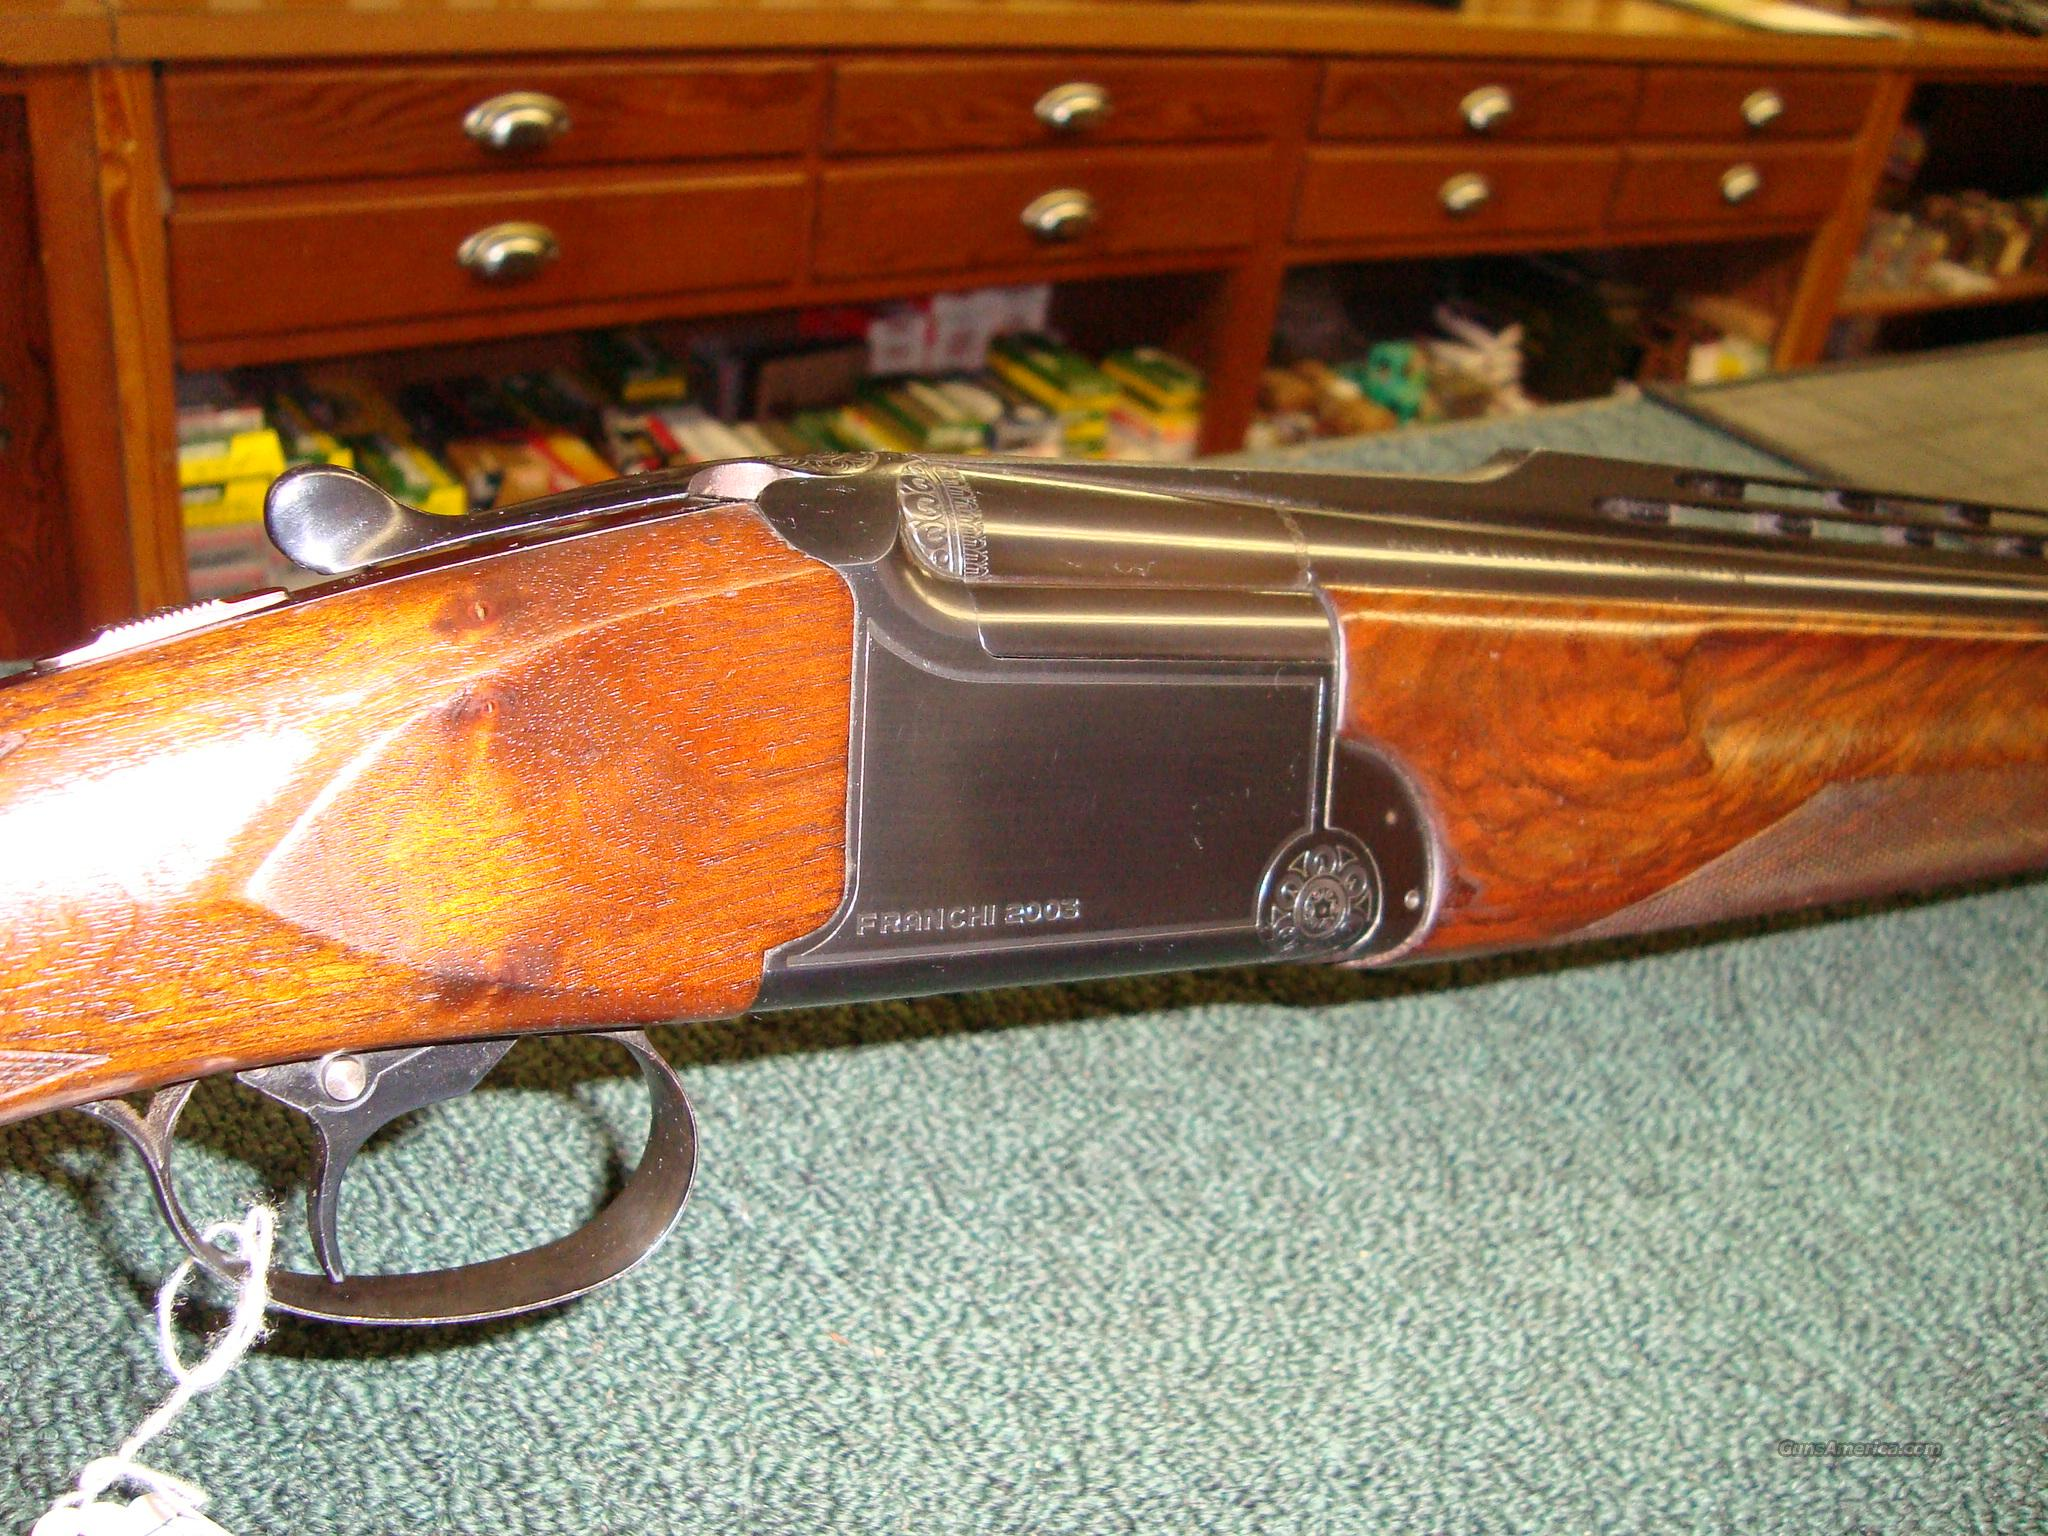 Franchi model 2003 Trap  Guns > Shotguns > Franchi Shotguns > Over/Under > Trap/Skeet